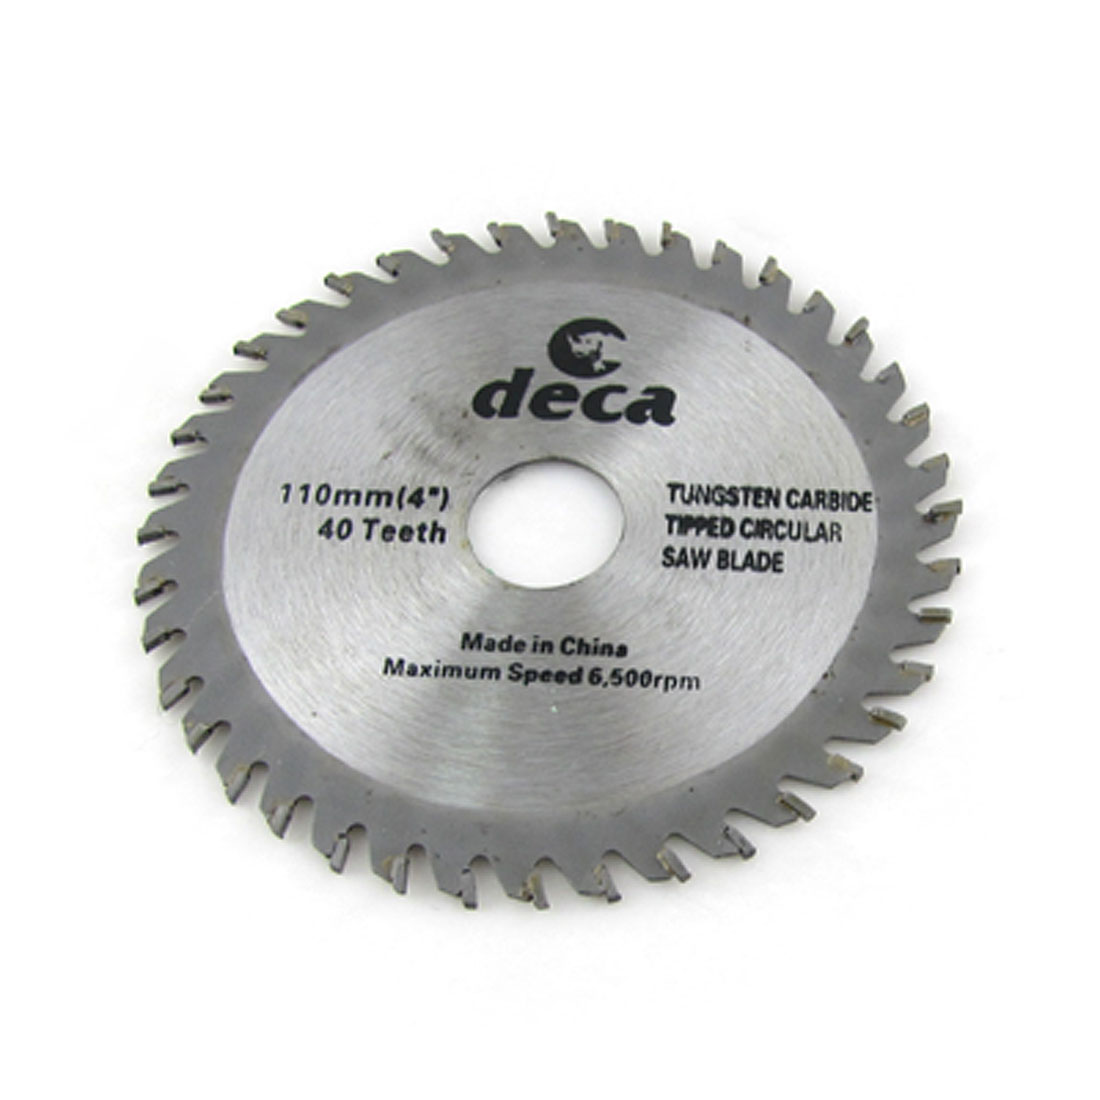 "Woodworking 4"" 40 Tooth Tungsten Carbide Tipped Metal Circular Saw Cutter"